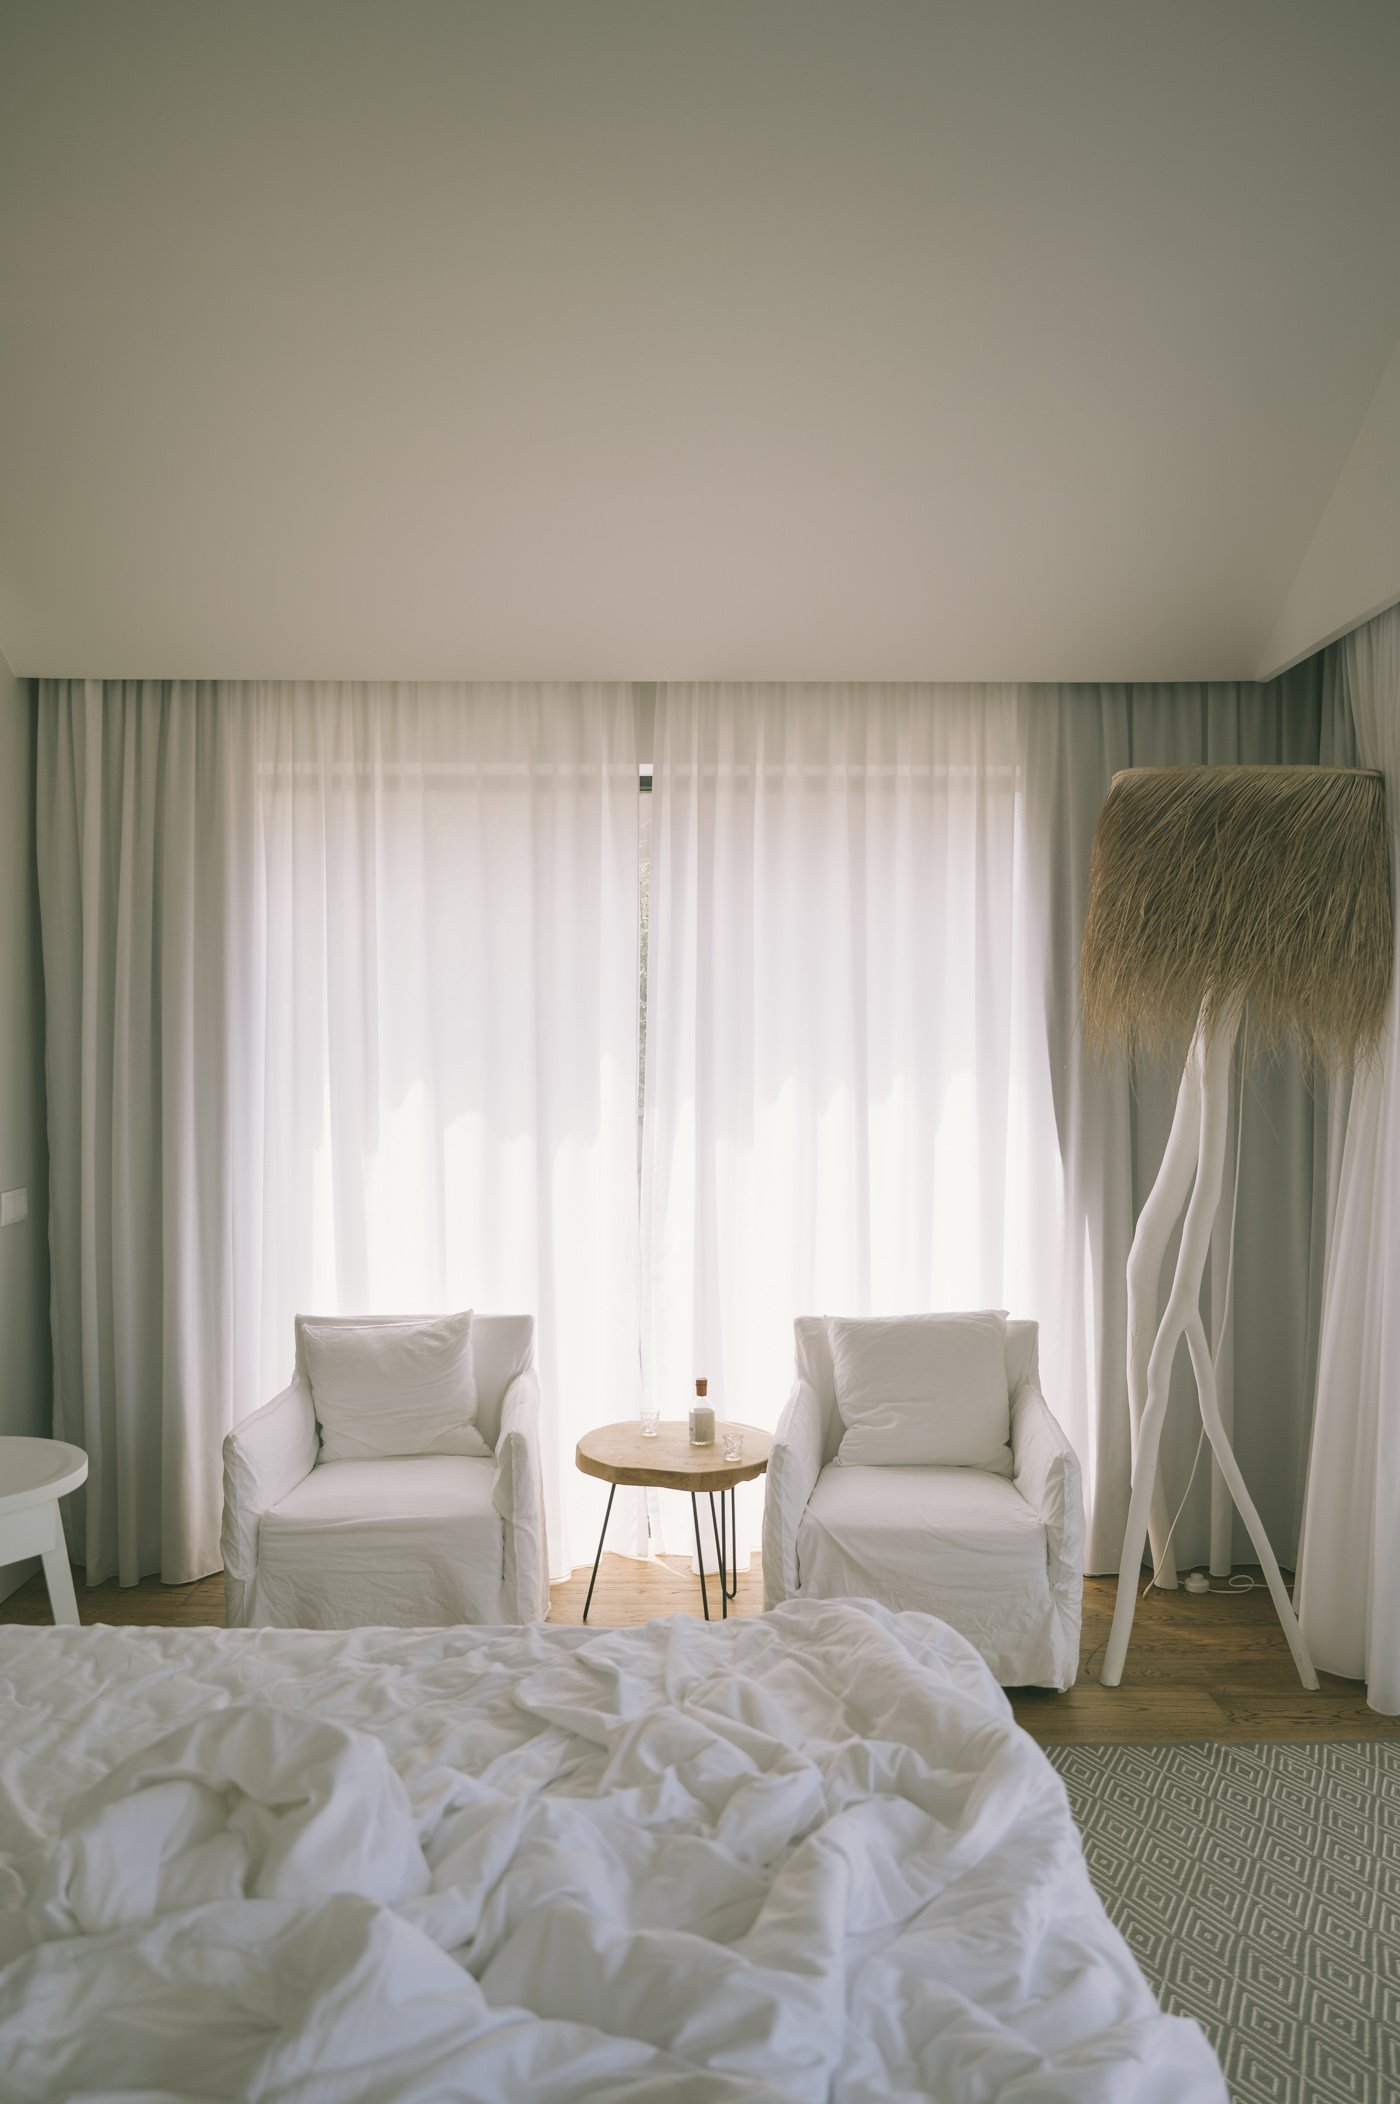 Our room at villa #35 at Sublime Comporta